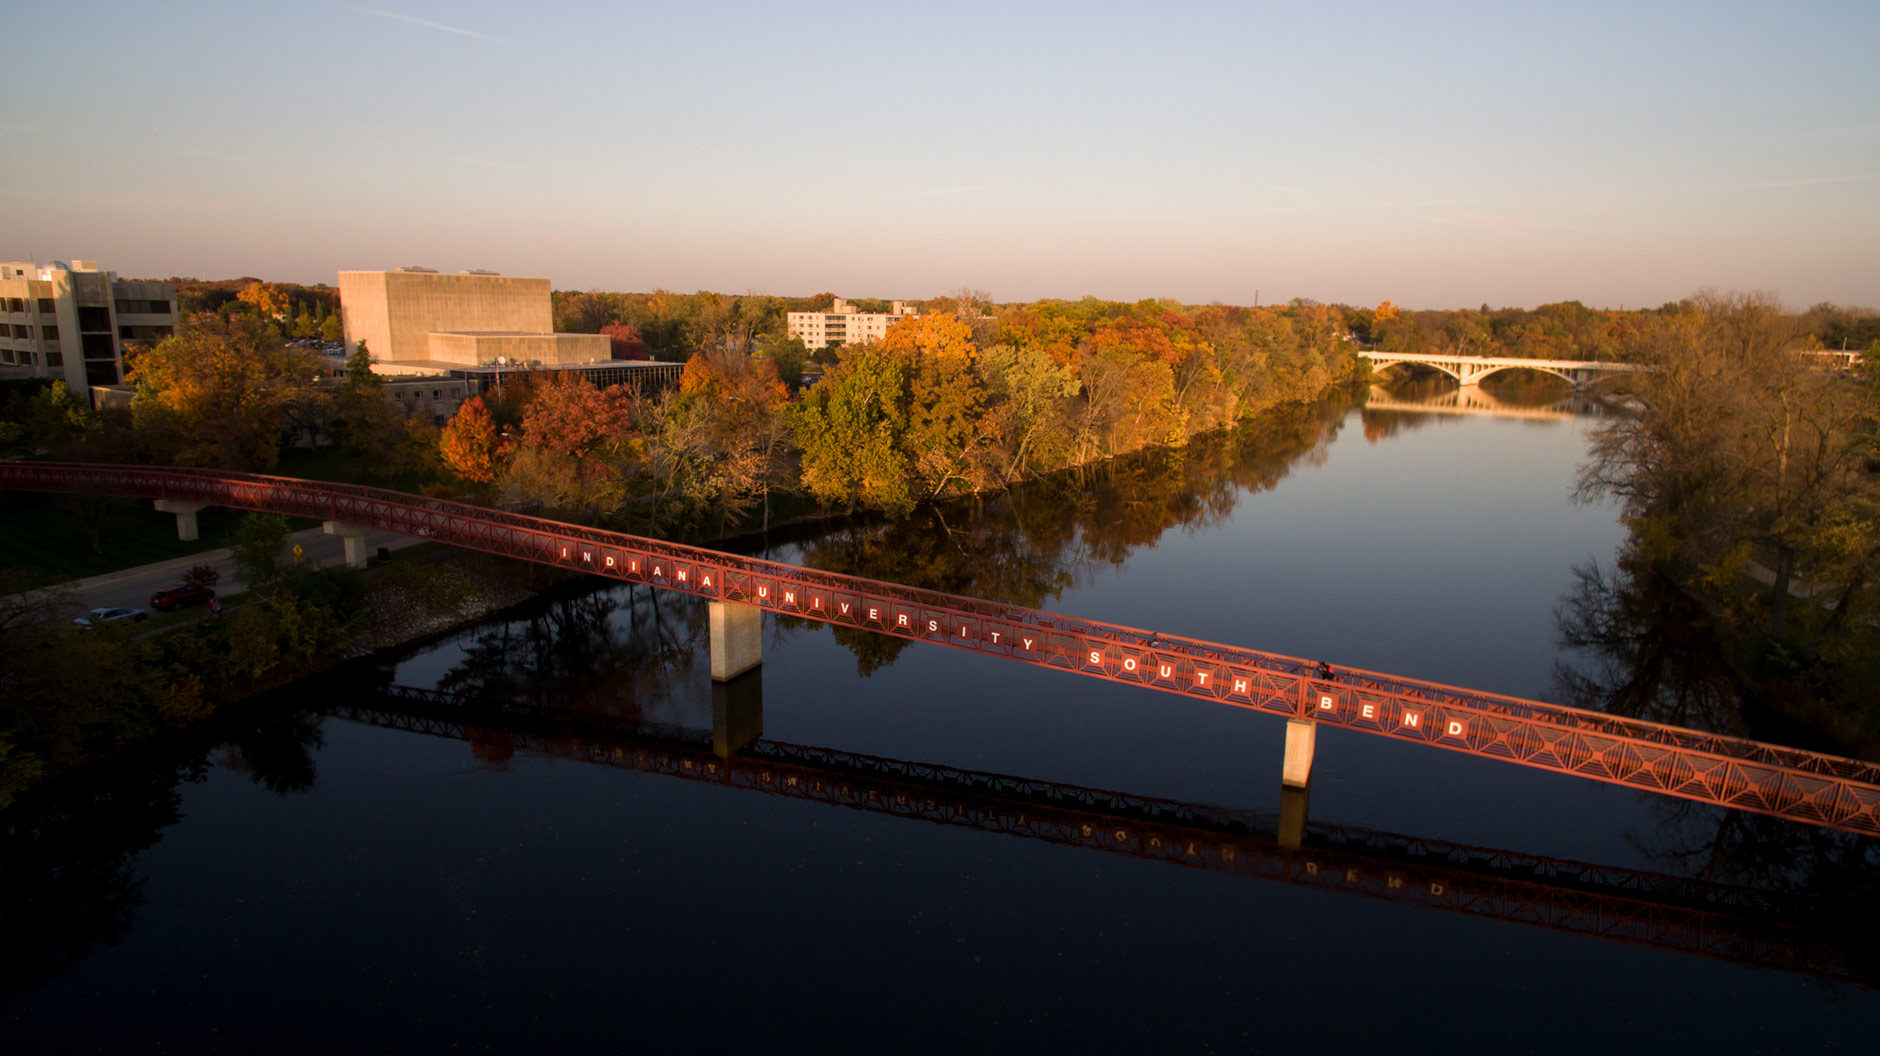 The St. Joseph River flows through the Indiana University South Bend campus on a fall evening on Tuesday, Nov. 1, 2016. (James Brosher/Indiana University)